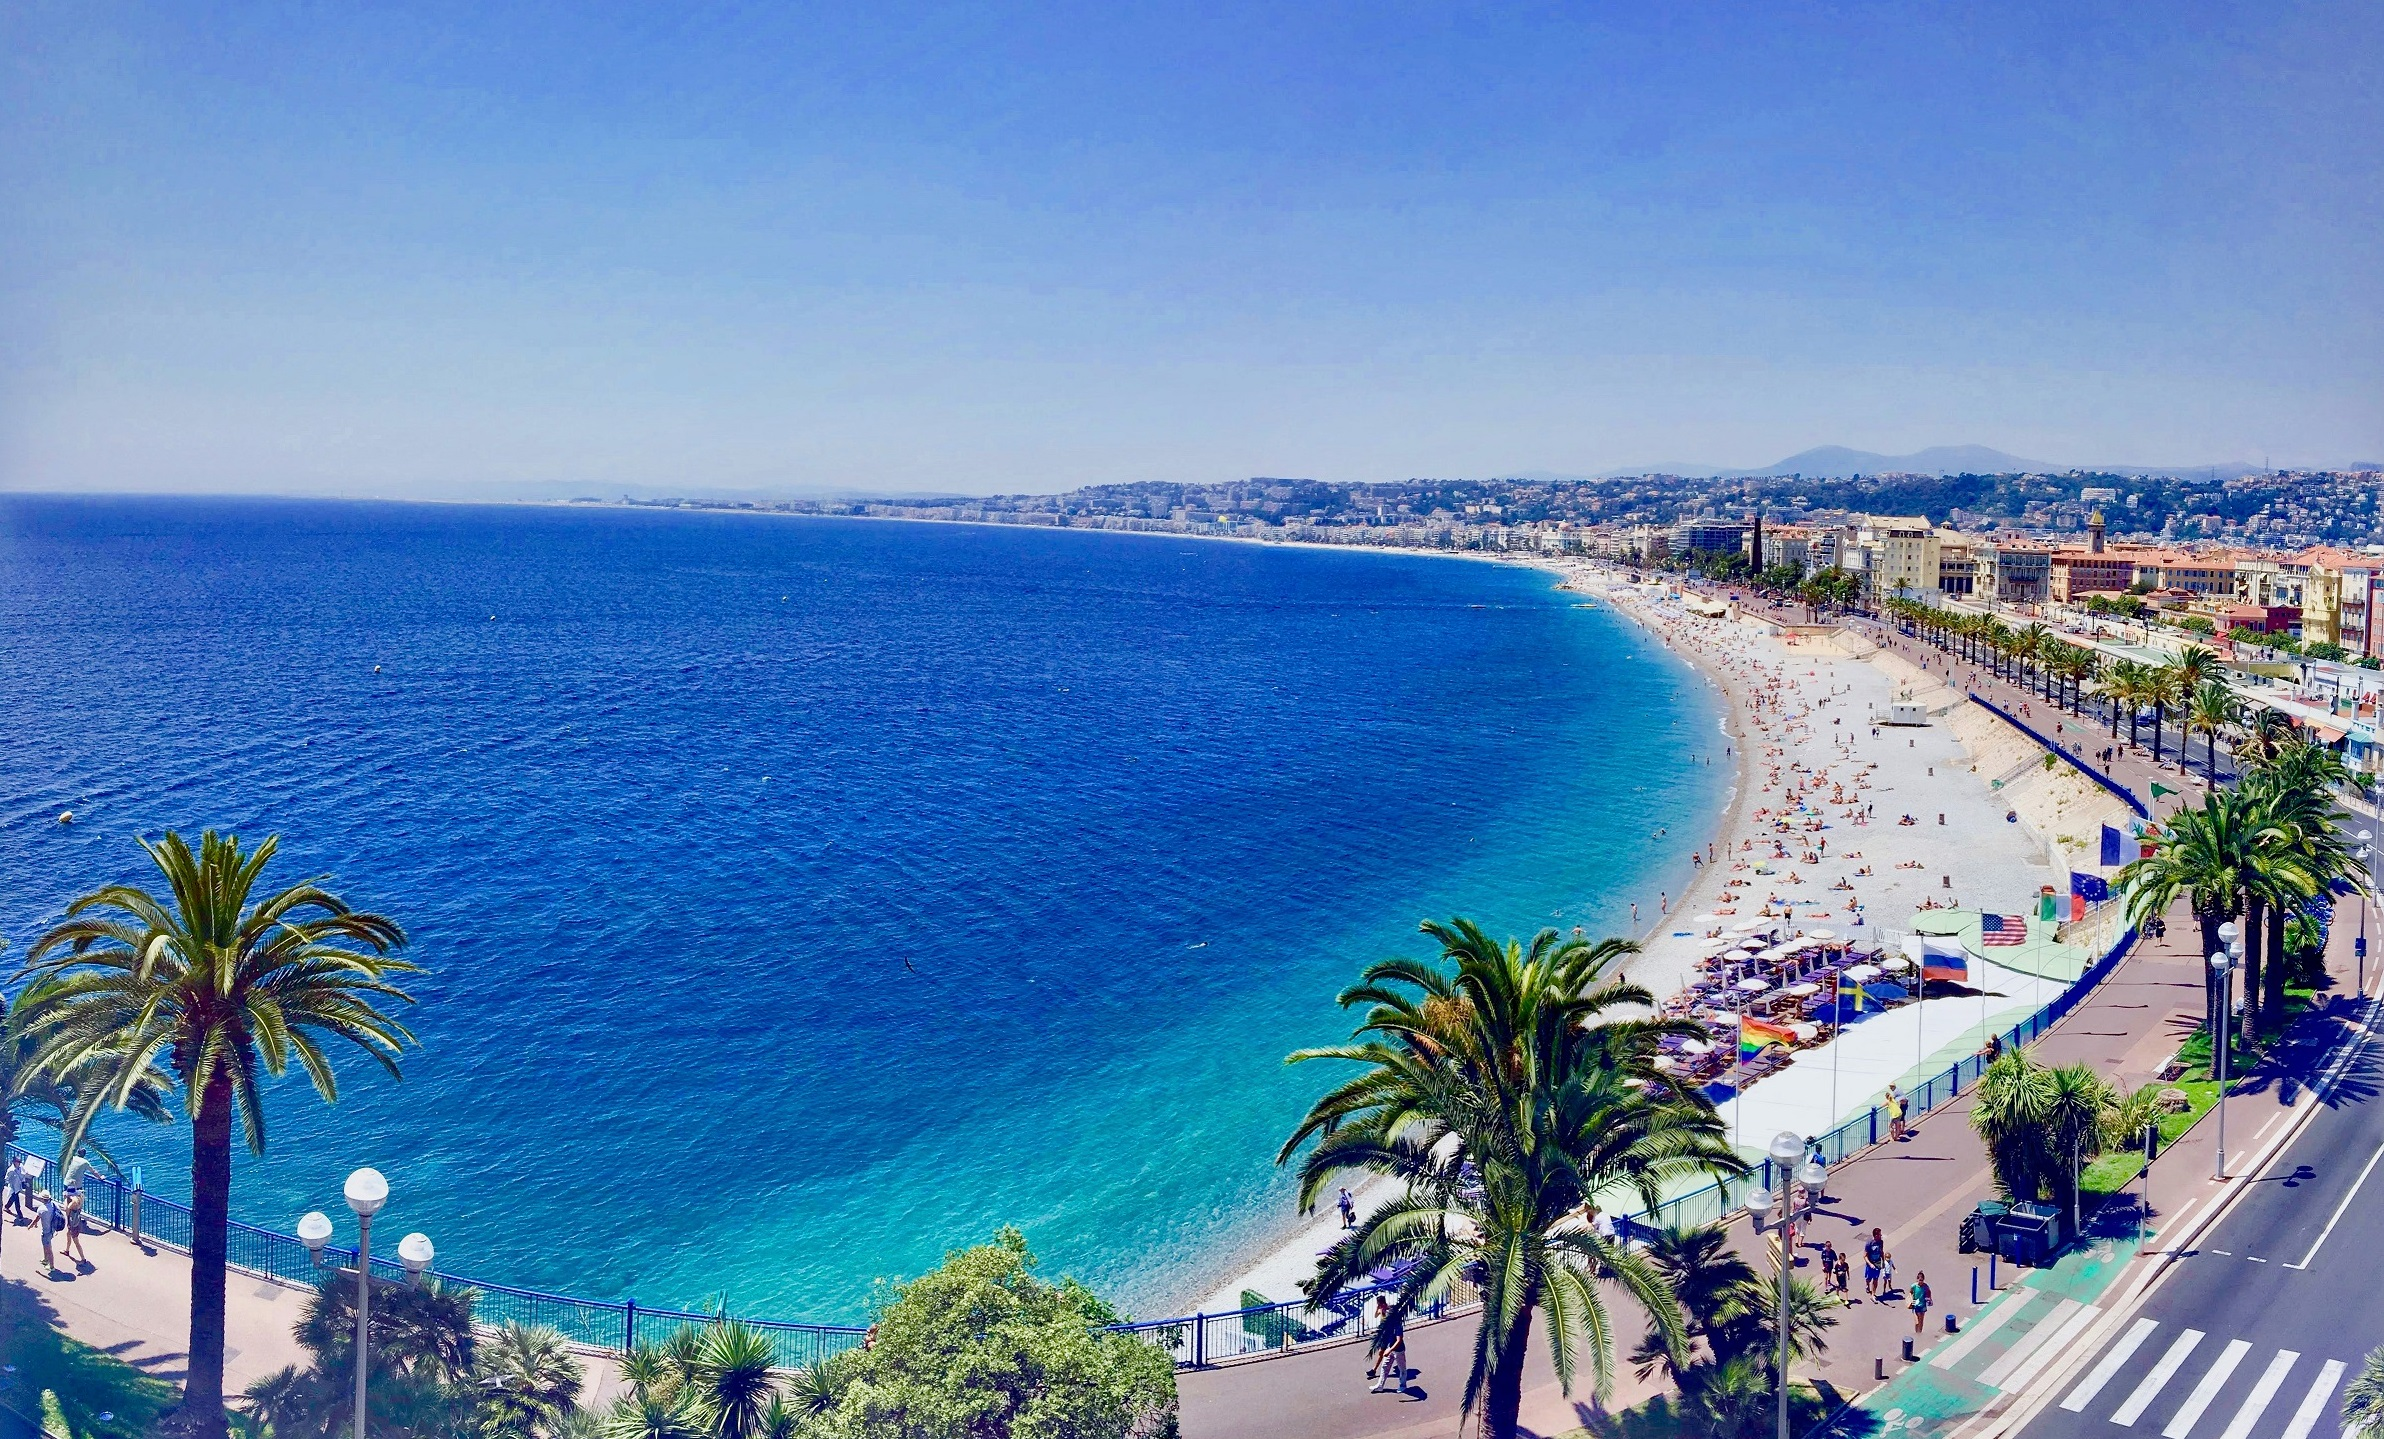 View of Nice